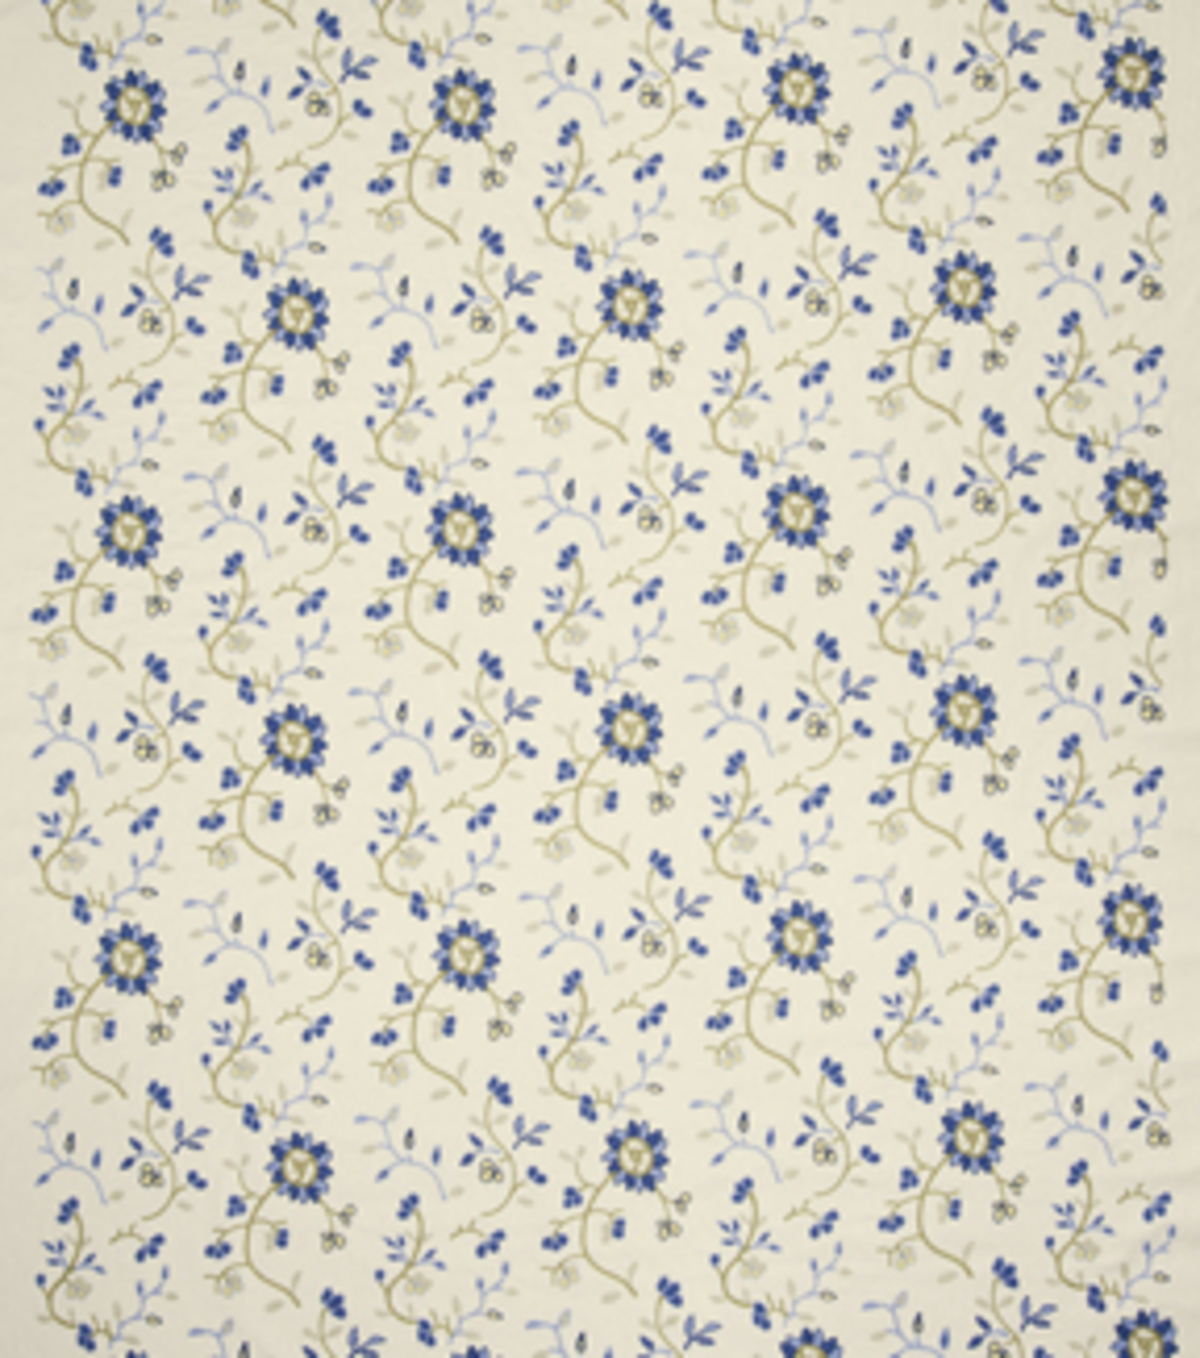 Home Decor 8\u0022x8\u0022 Fabric Swatch-French General Caspian Bleu